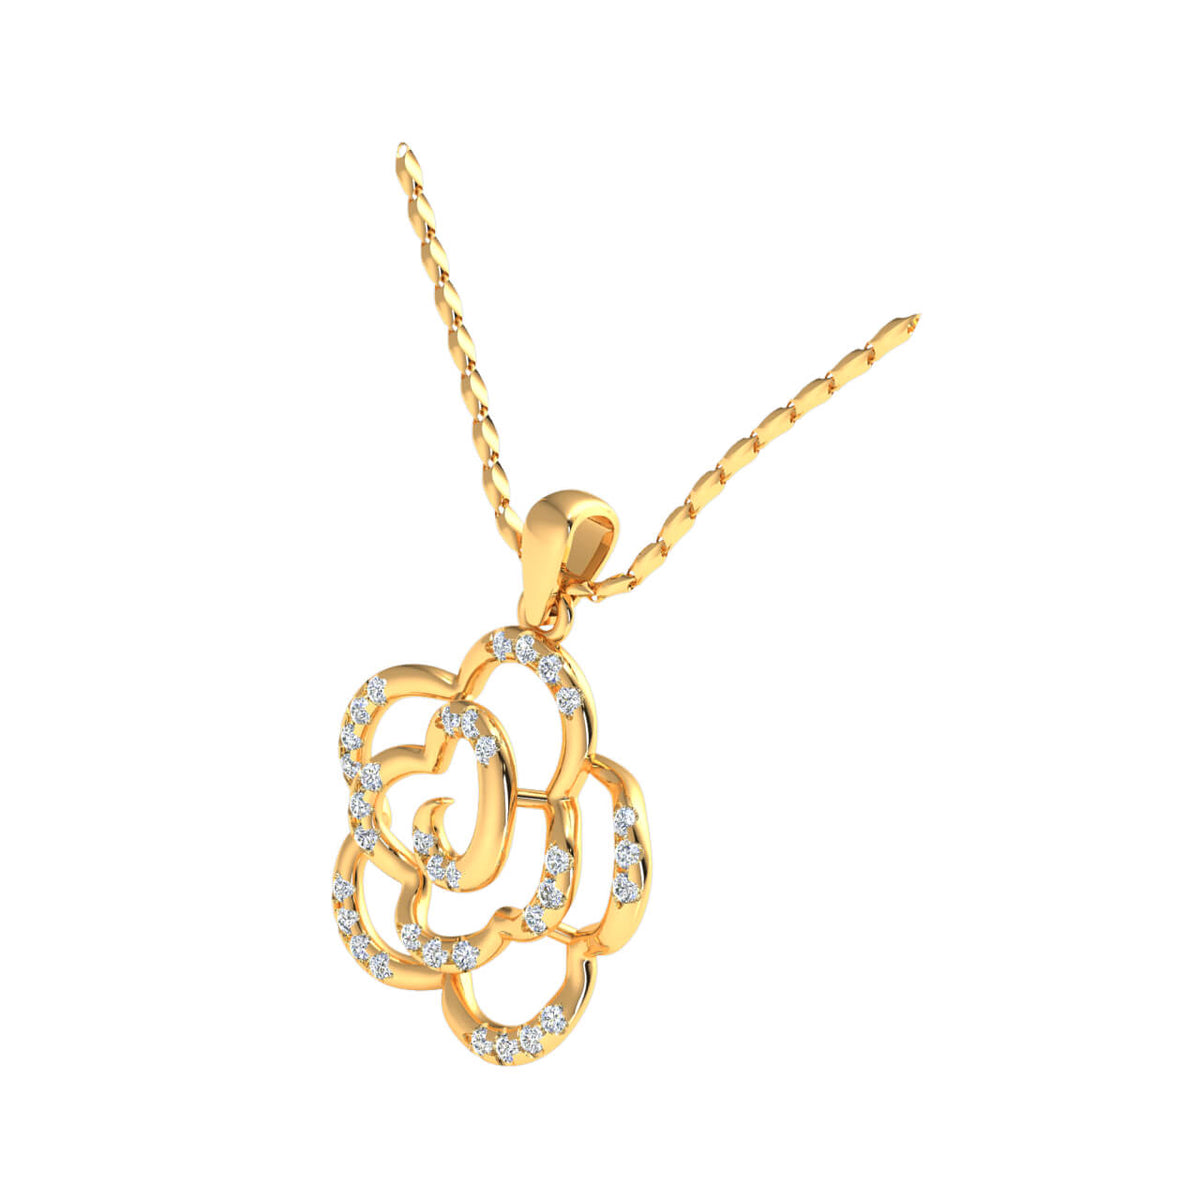 0.33 Ct Drop Fancy Pendant For Women Round FG VS Diamond 14k Gold